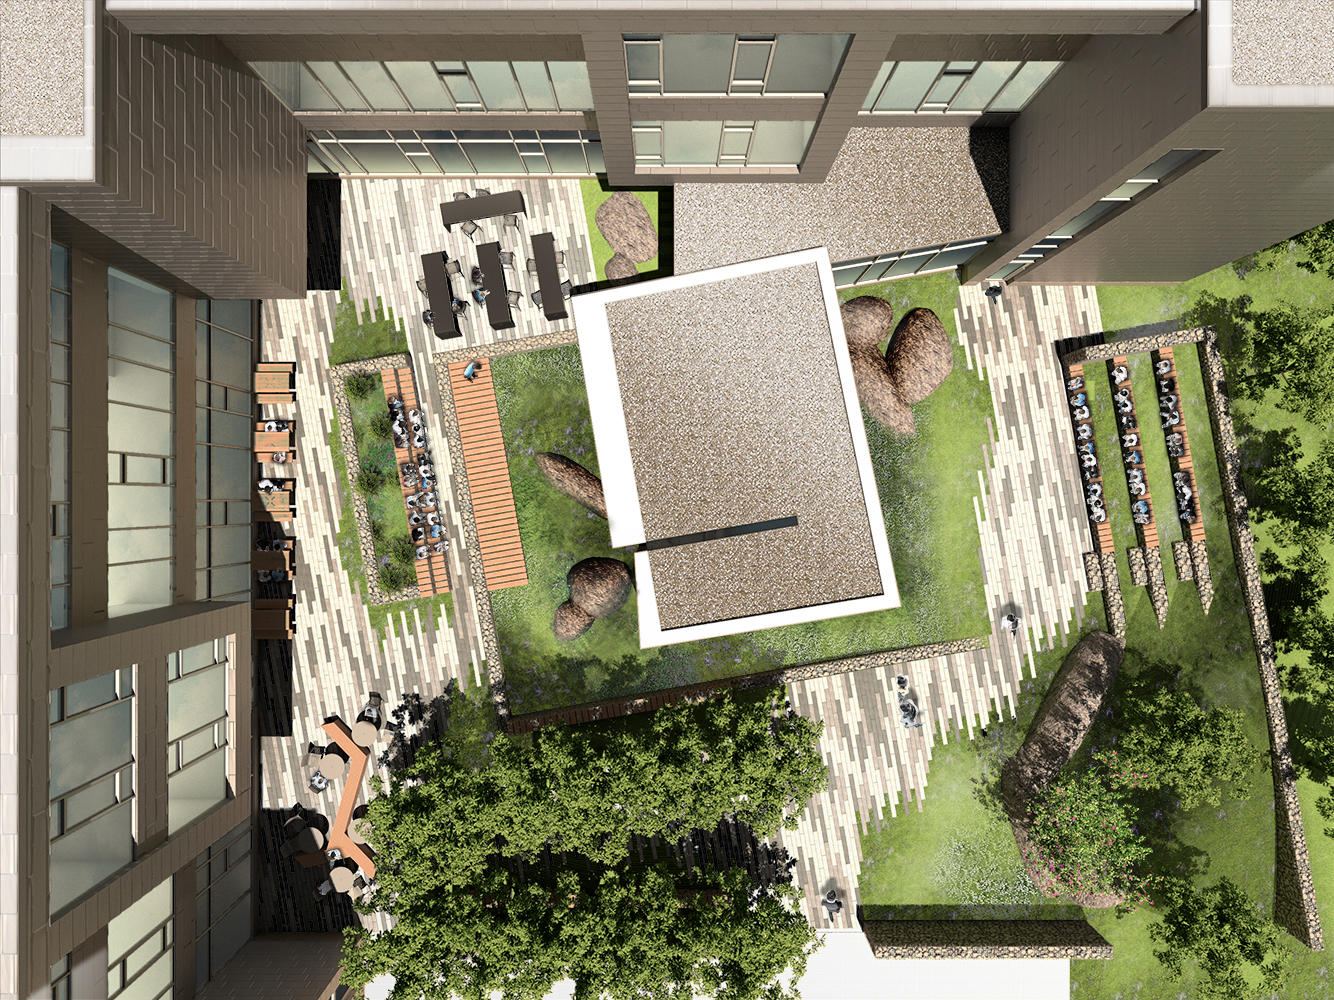 AERIAL VIEW OF OUTDOOR COURTYARD